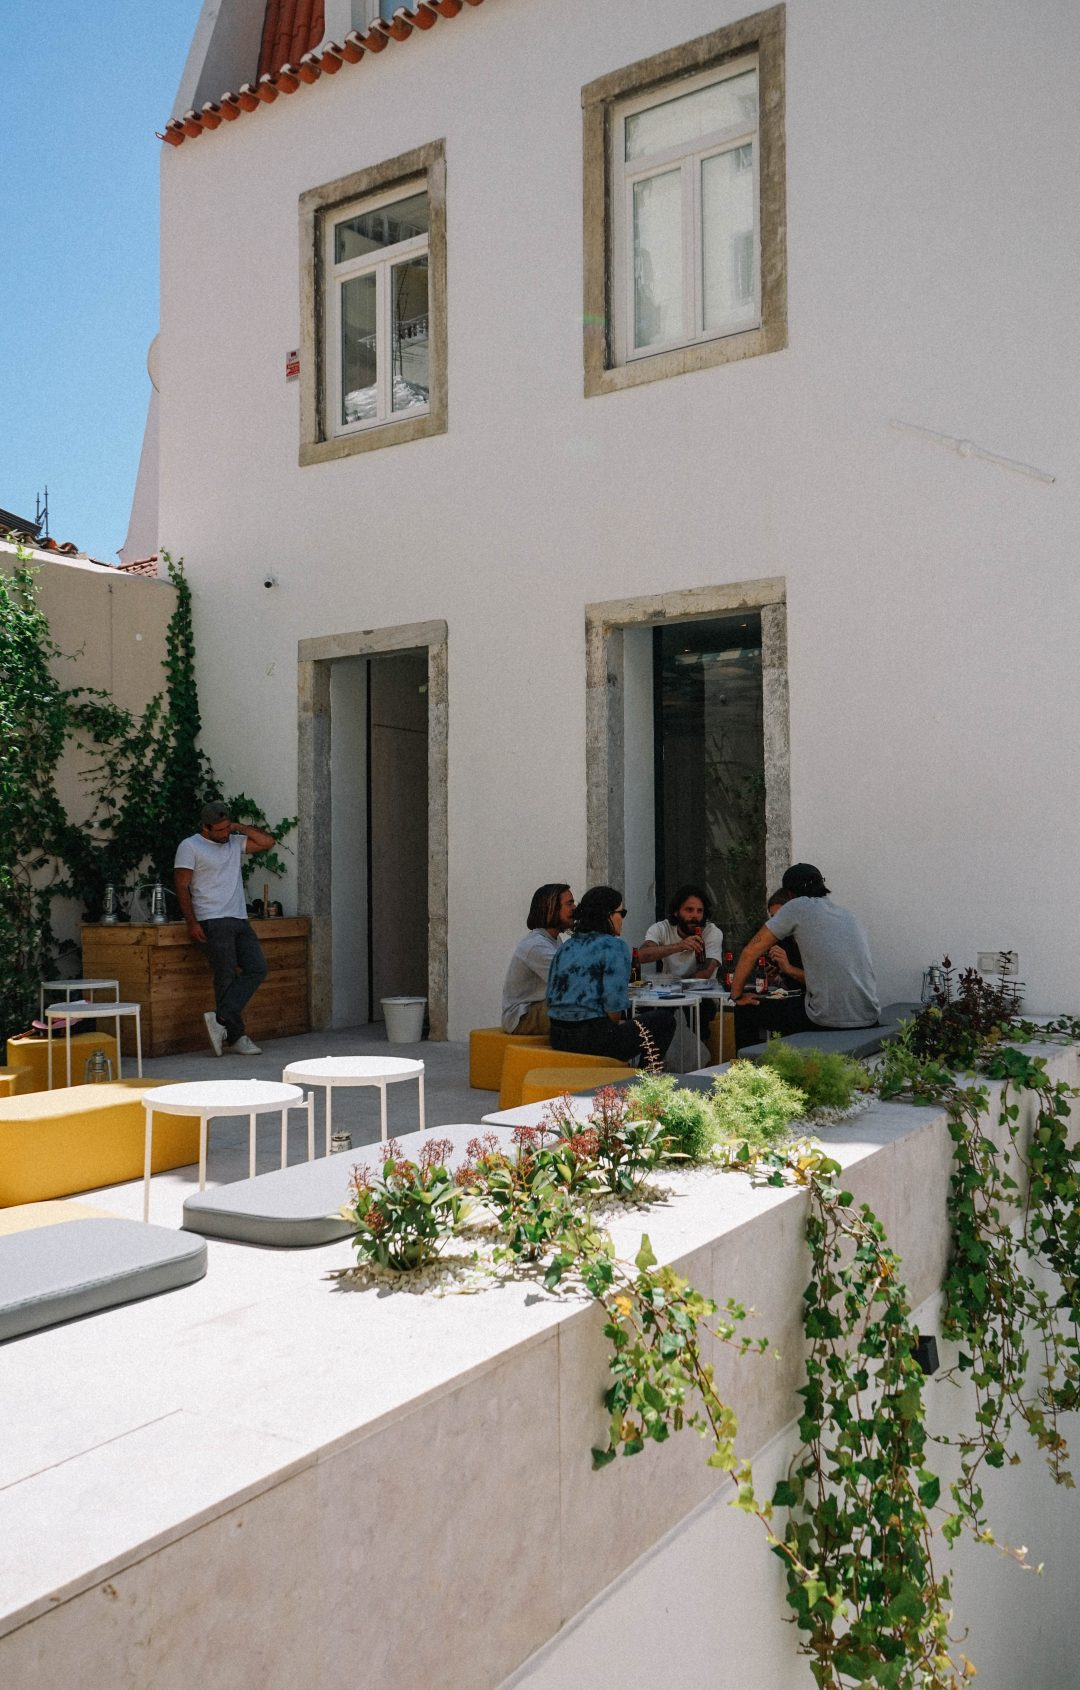 samesame terrace insitu co-living lisboa creative co-living coliving lisbon